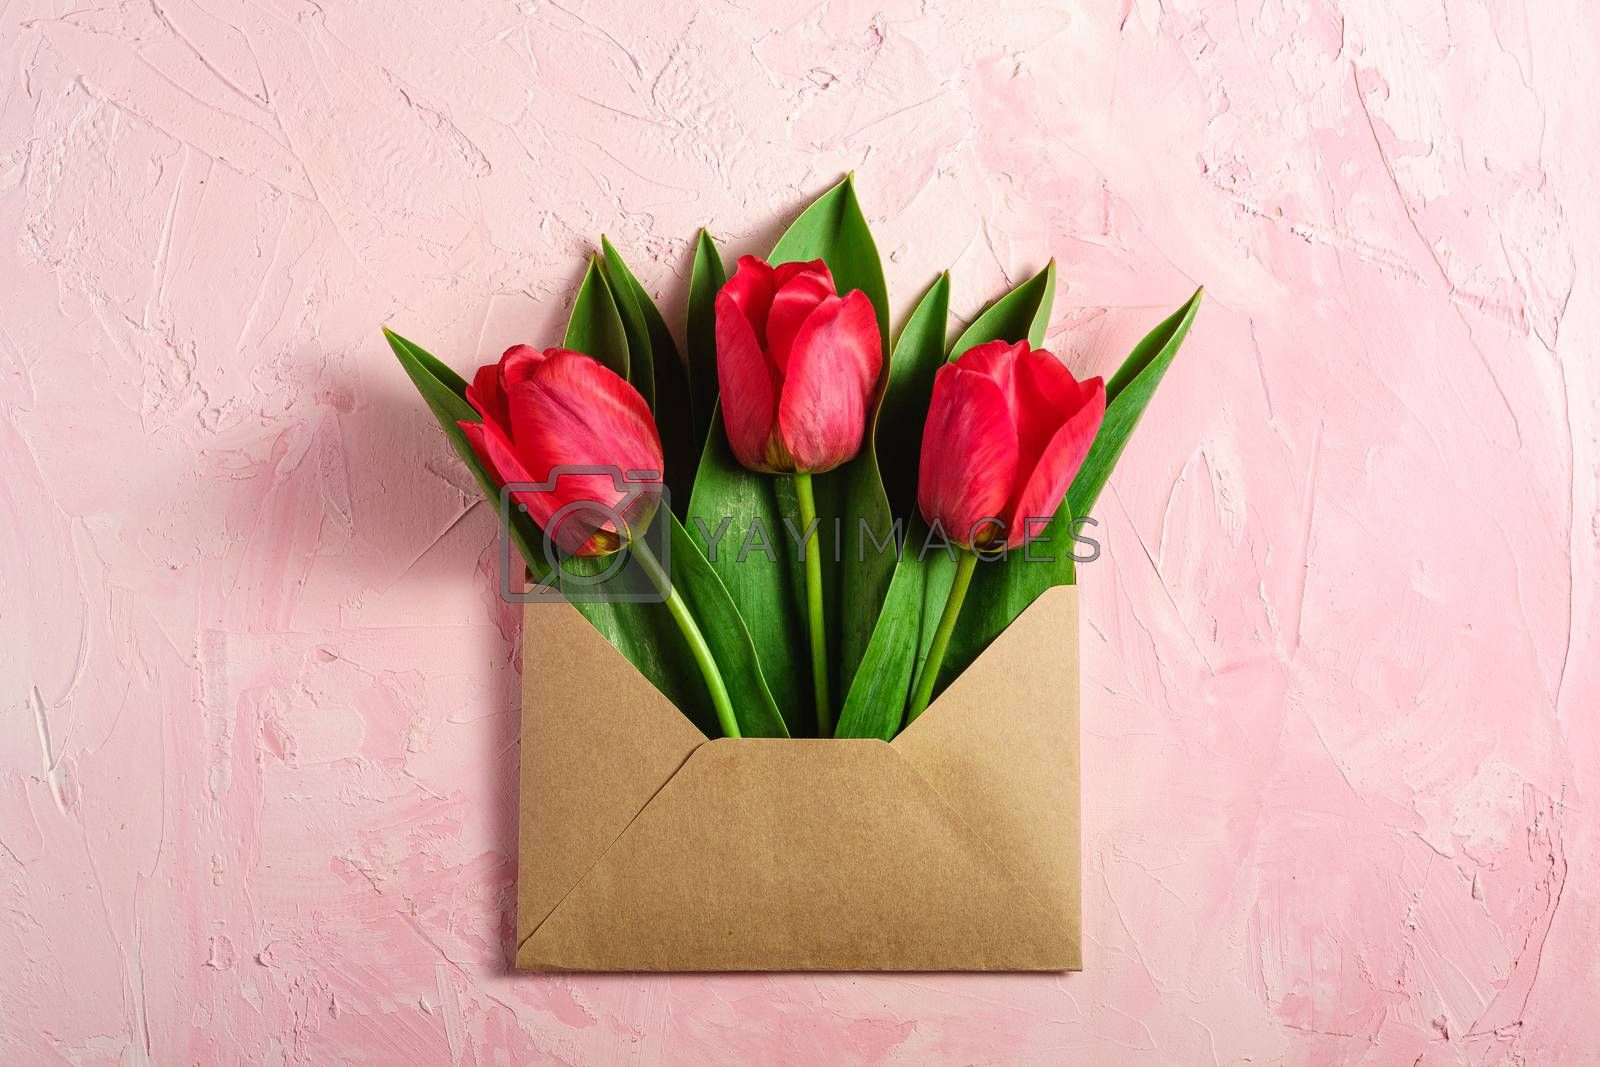 Bunch of red tulip flowers in paper envelope on textured pink background, top view copy space